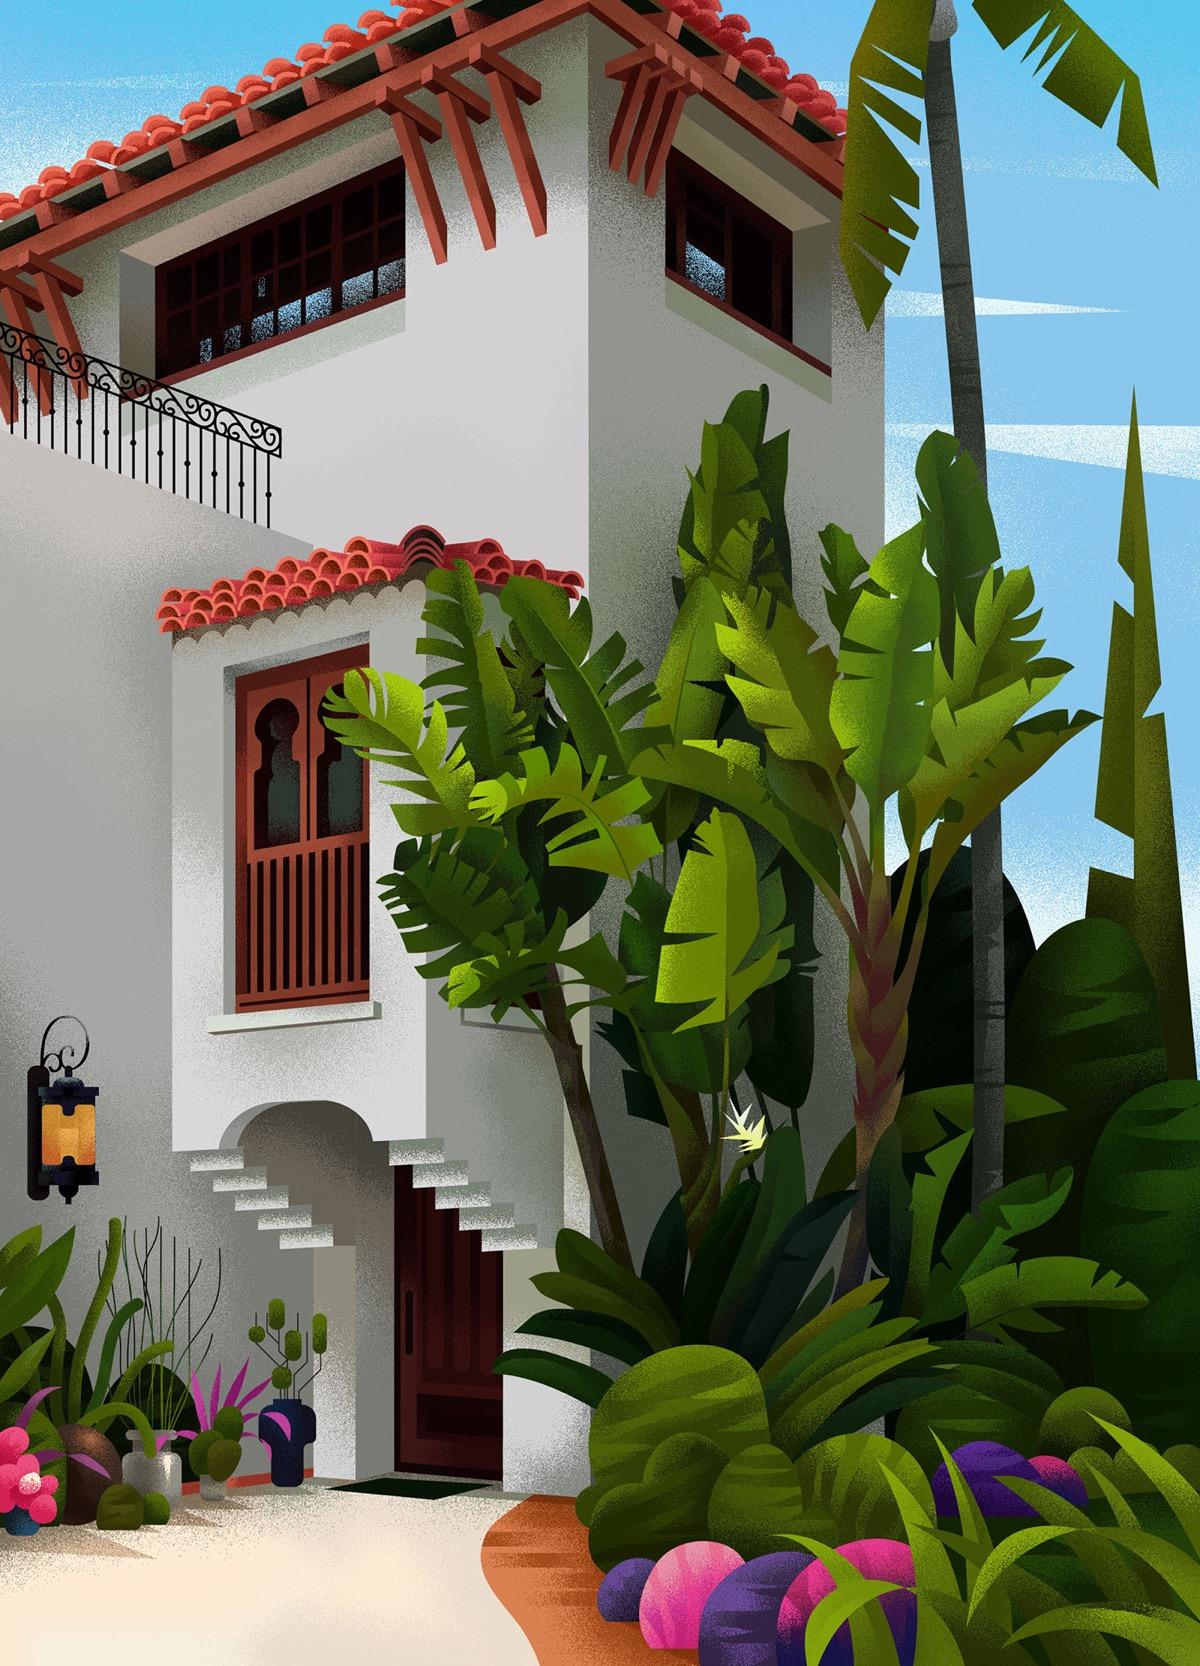 Captivating Architectural Illustrations Of Homes Around The World images 18